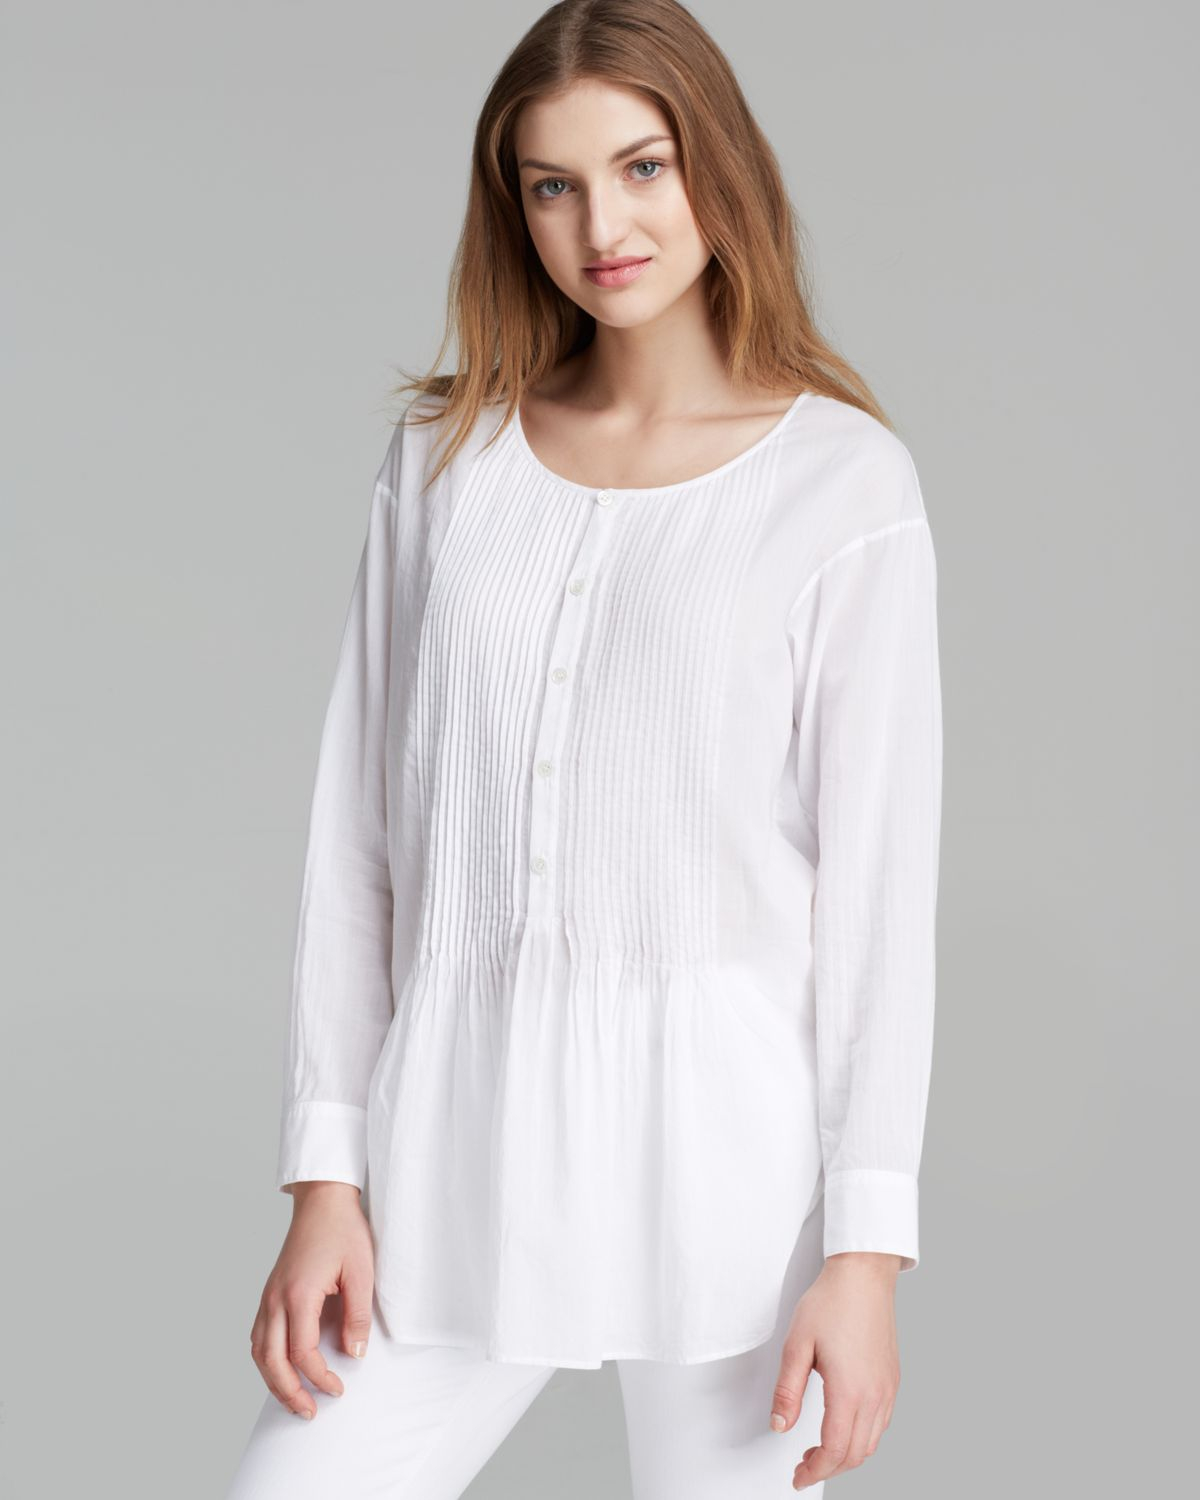 Find great deals on eBay for white pintuck blouse. Shop with confidence.